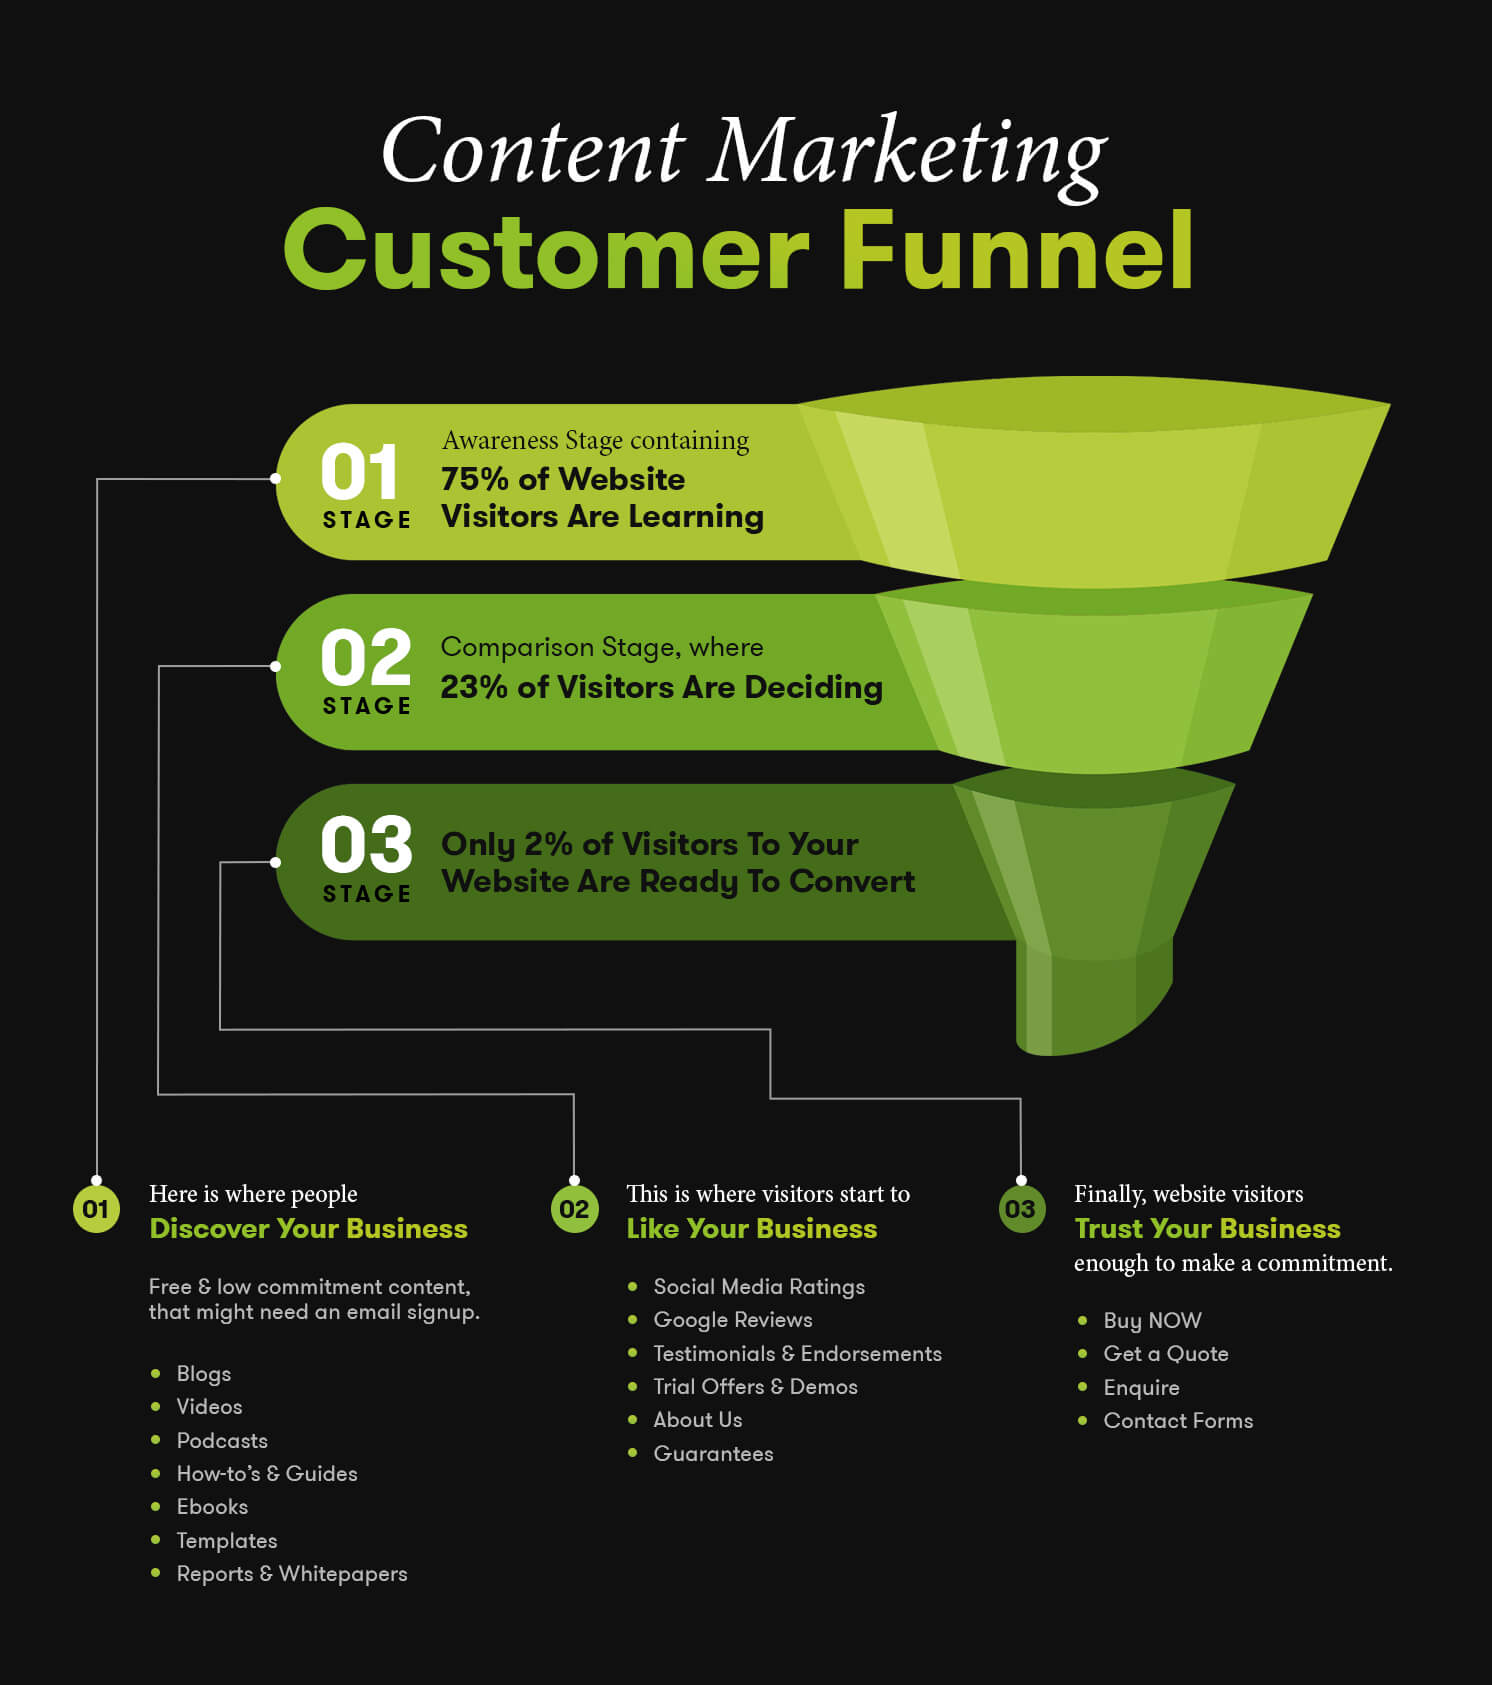 Content Marketing Customer Funnel